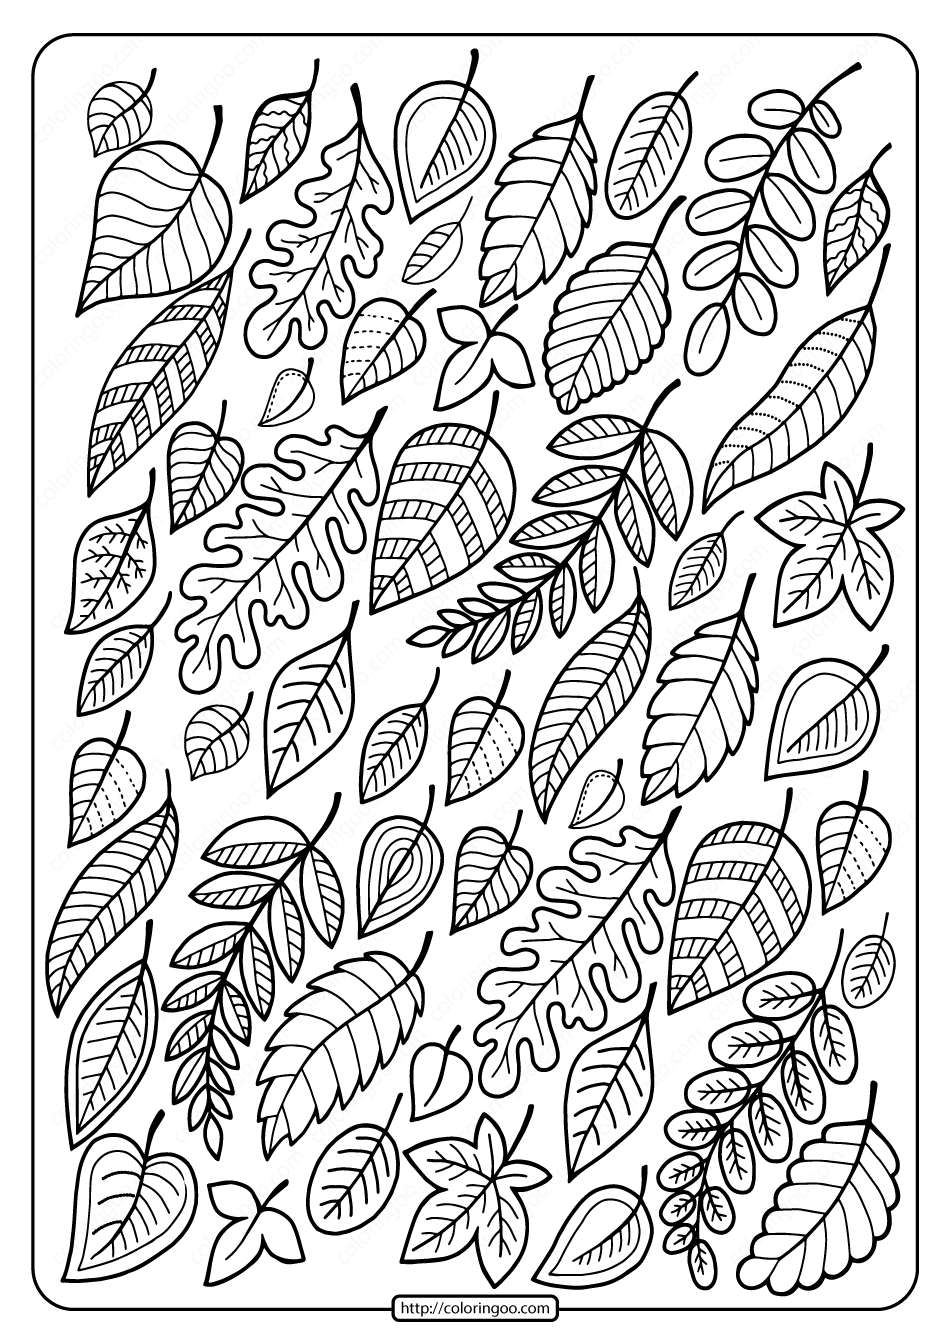 - Free Printable Falling Leaves Coloring Page